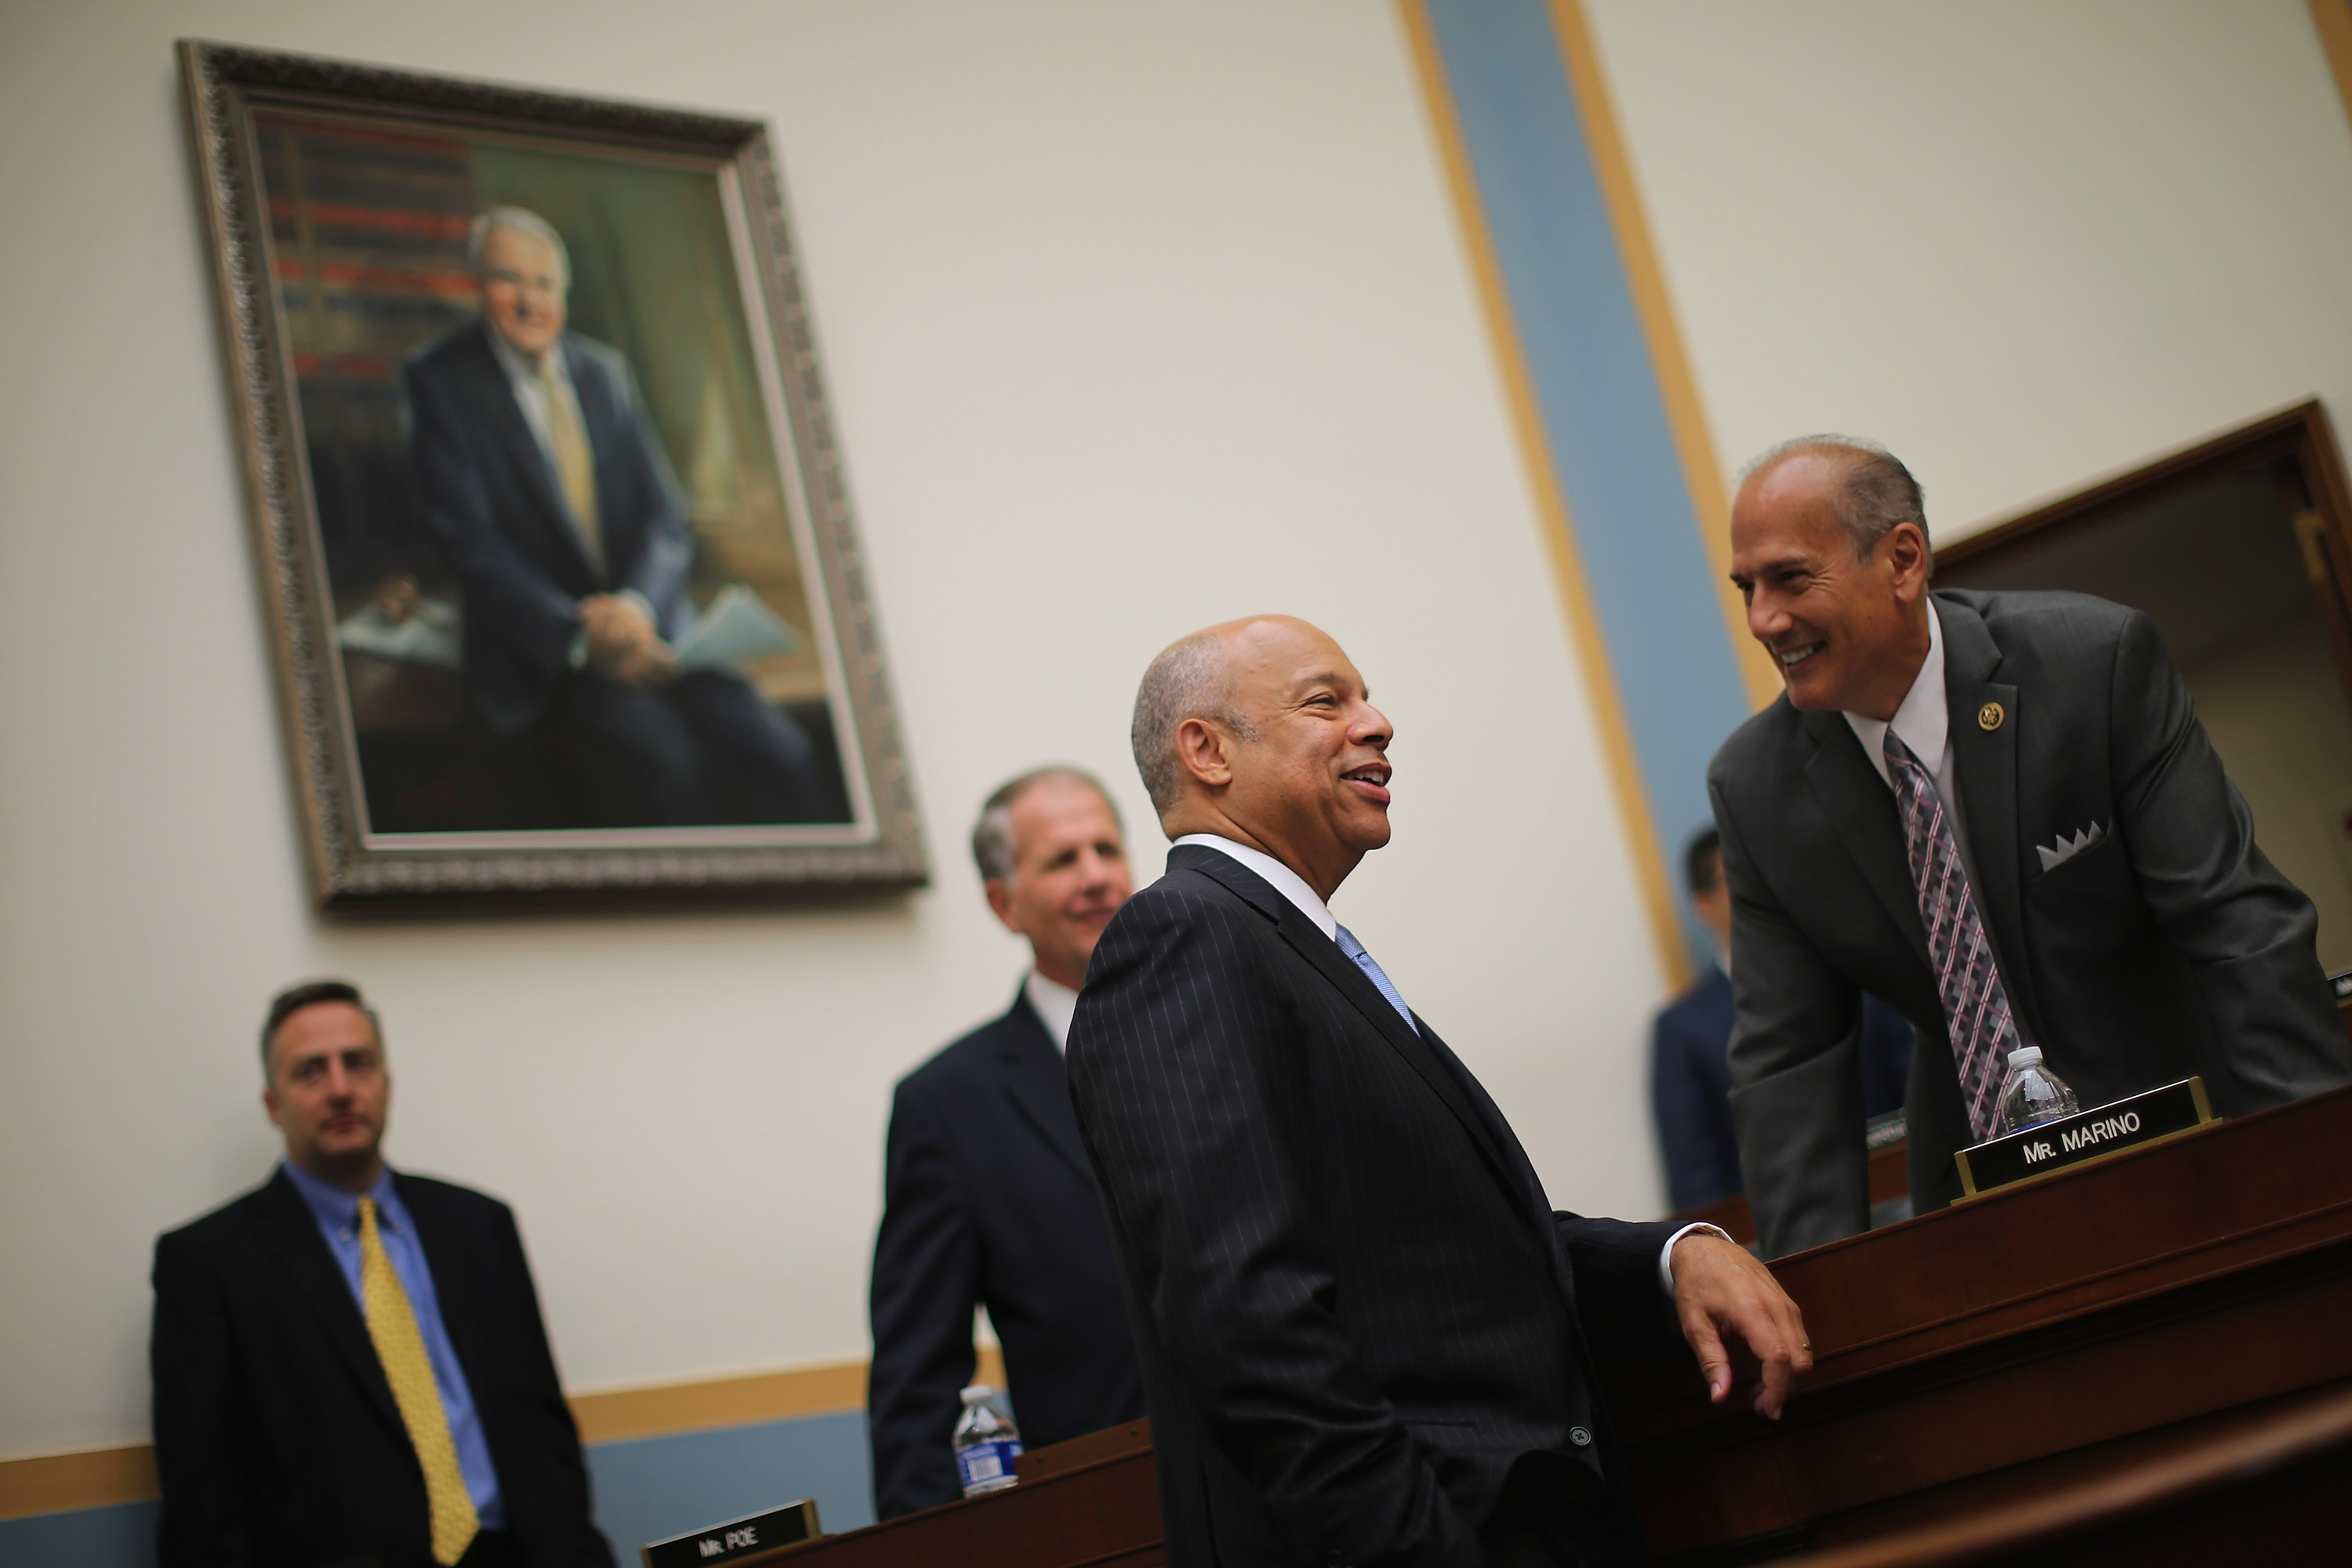 House Judiciary Committee member Rep. Thomas Marino (R) talks with U.S. Homeland Security Secretary Jeh Johnson before a committee hearing about oversight of the department July 14, 2015 in Washington, DC. (Photo by Chip Somodevilla/Getty Images)